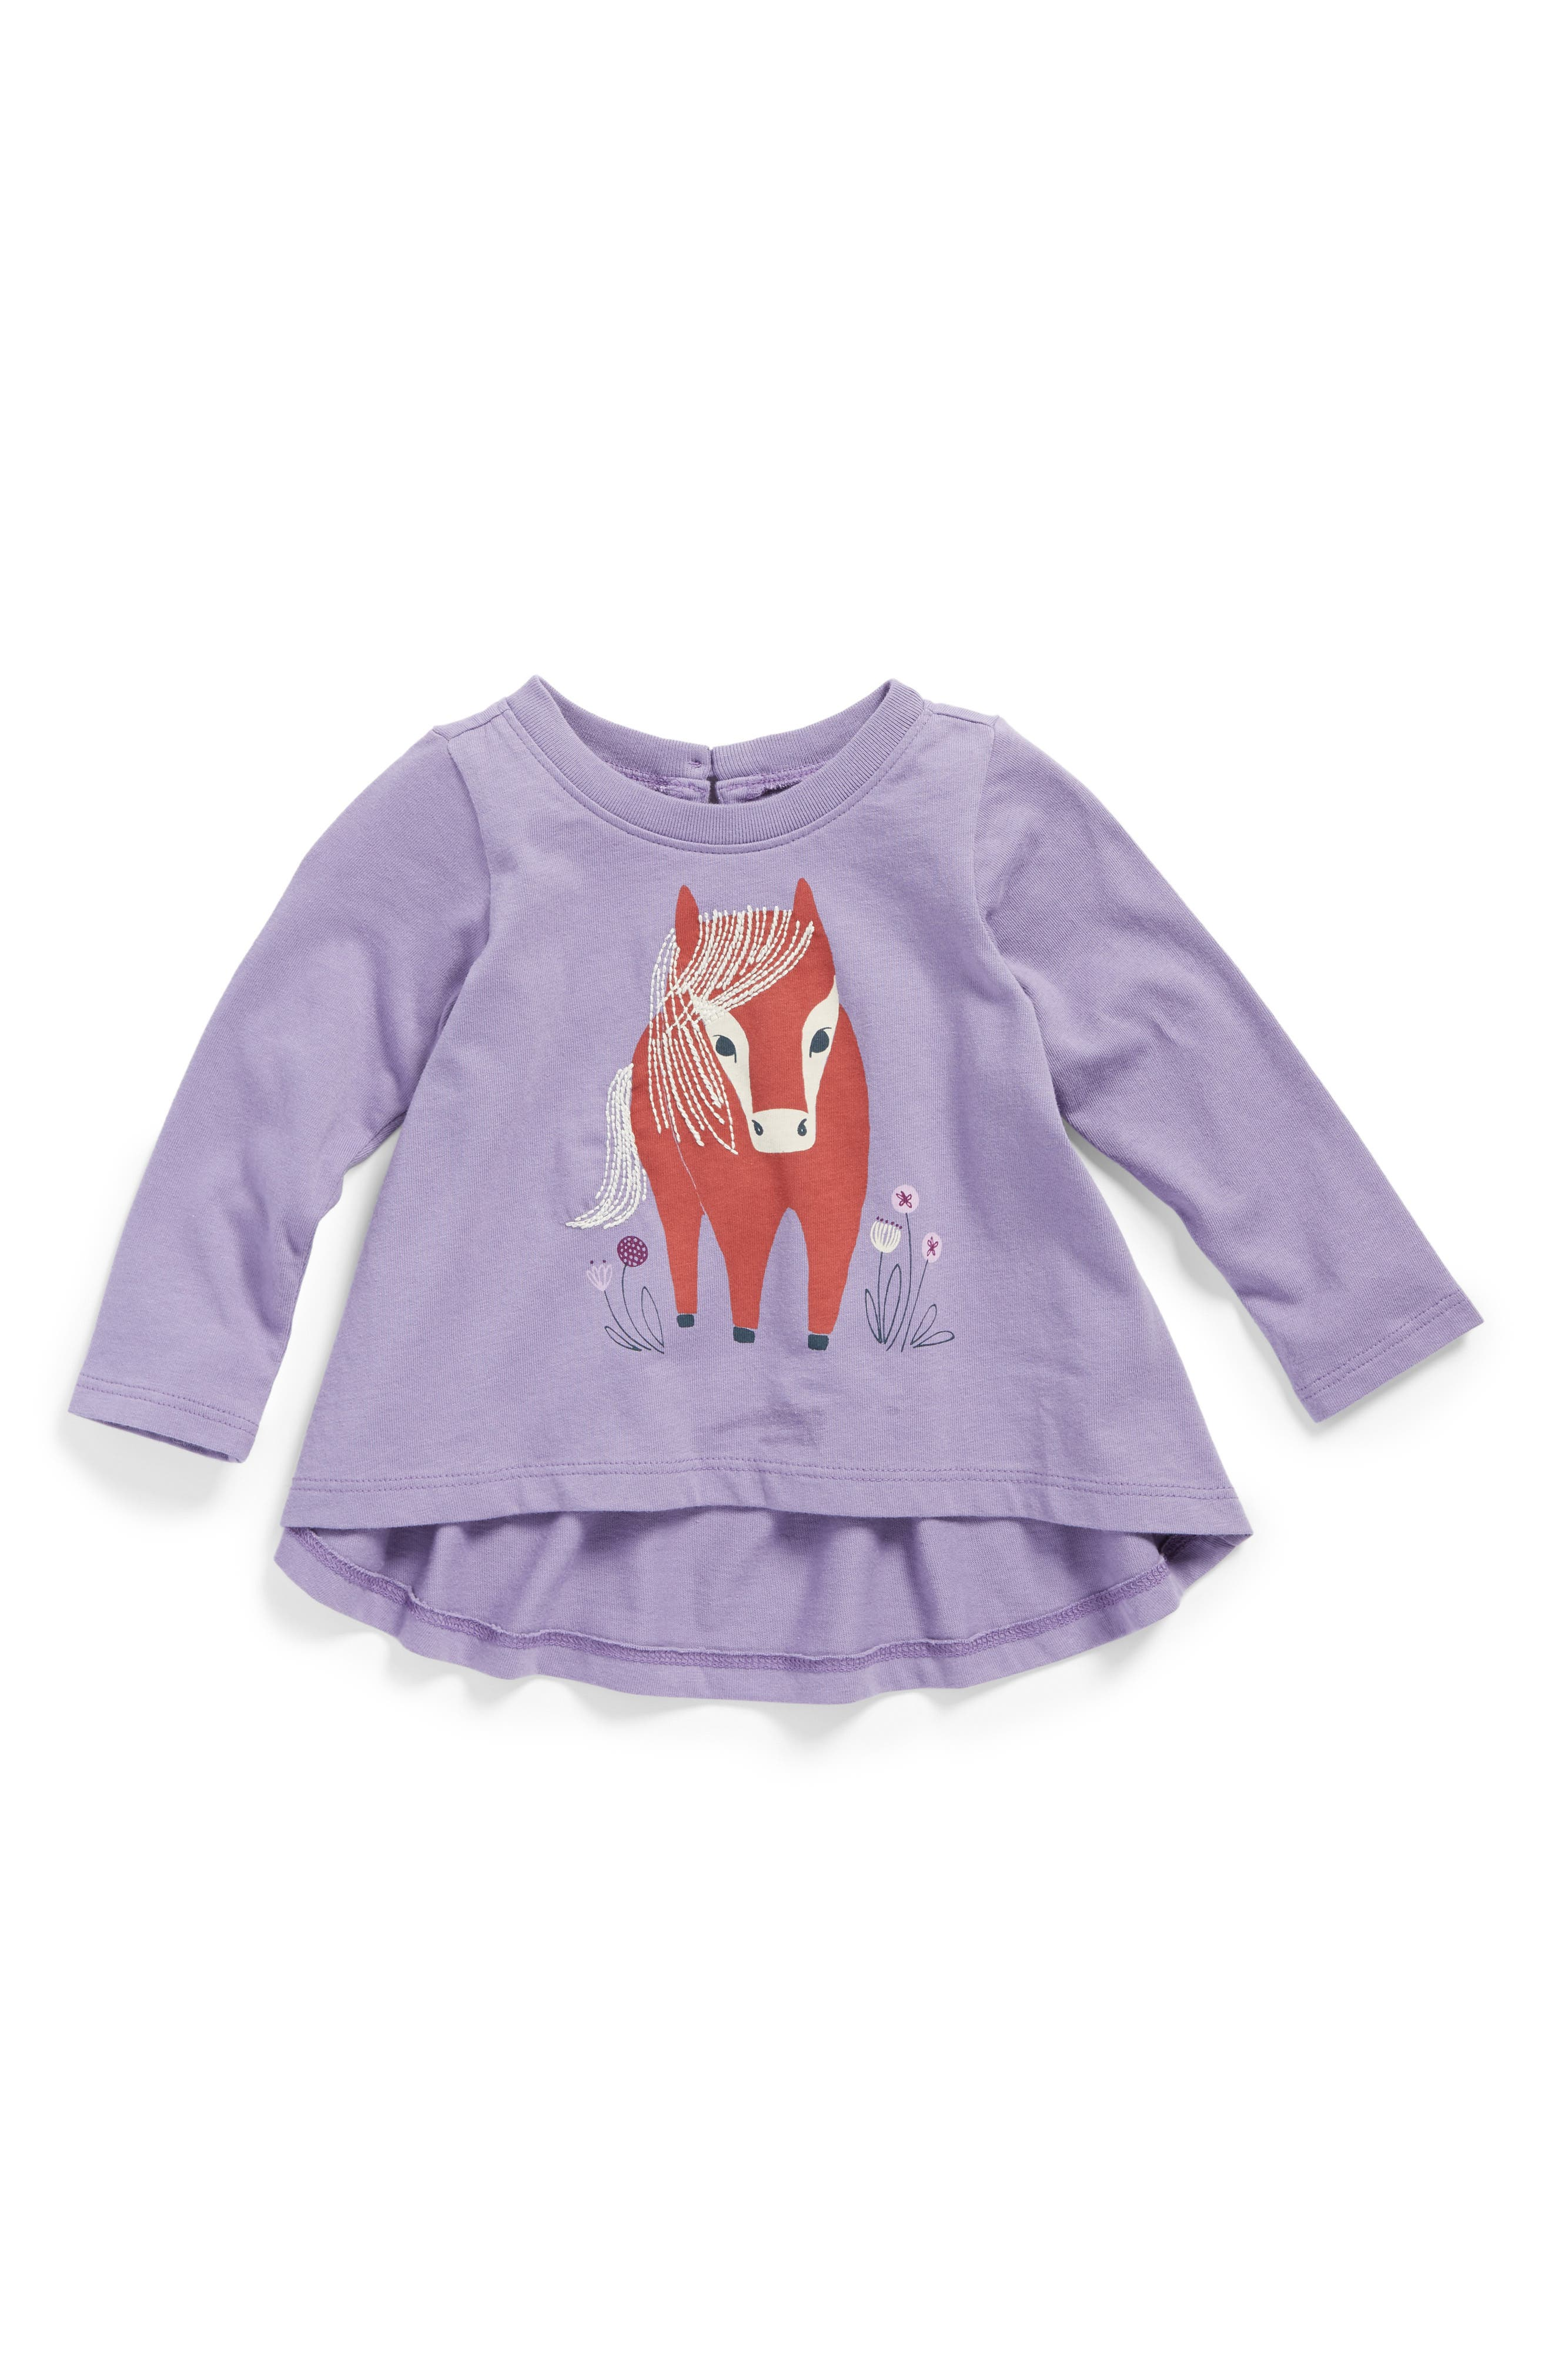 Alternate Image 1 Selected - Tea Collection Ponaidh Graphic Print Twirl Top (Baby Girls)